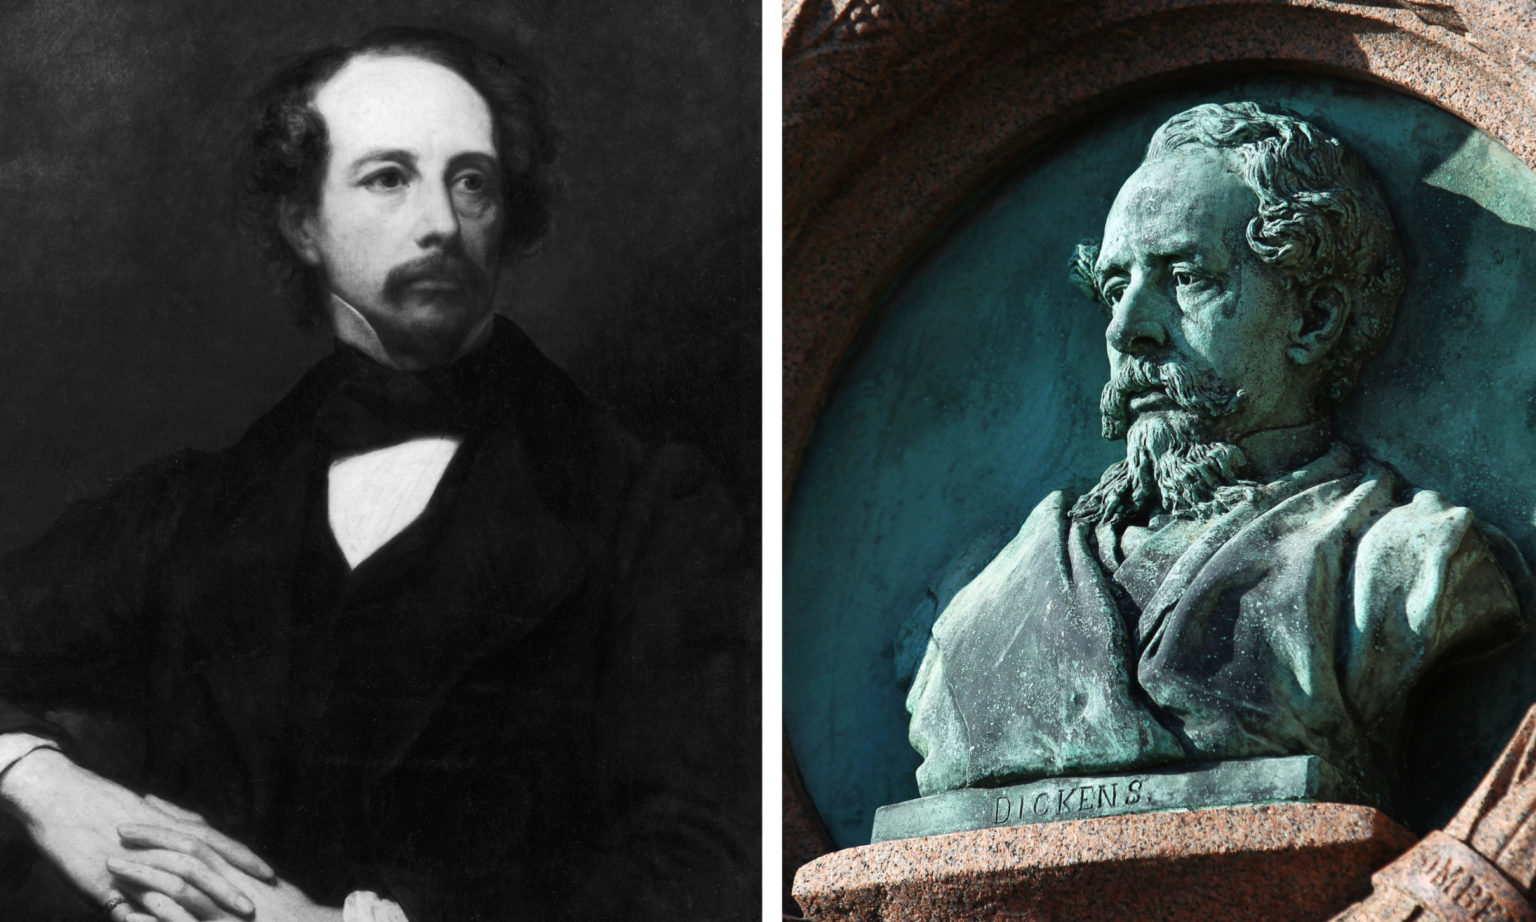 Charles Dickens visited Aberdeen